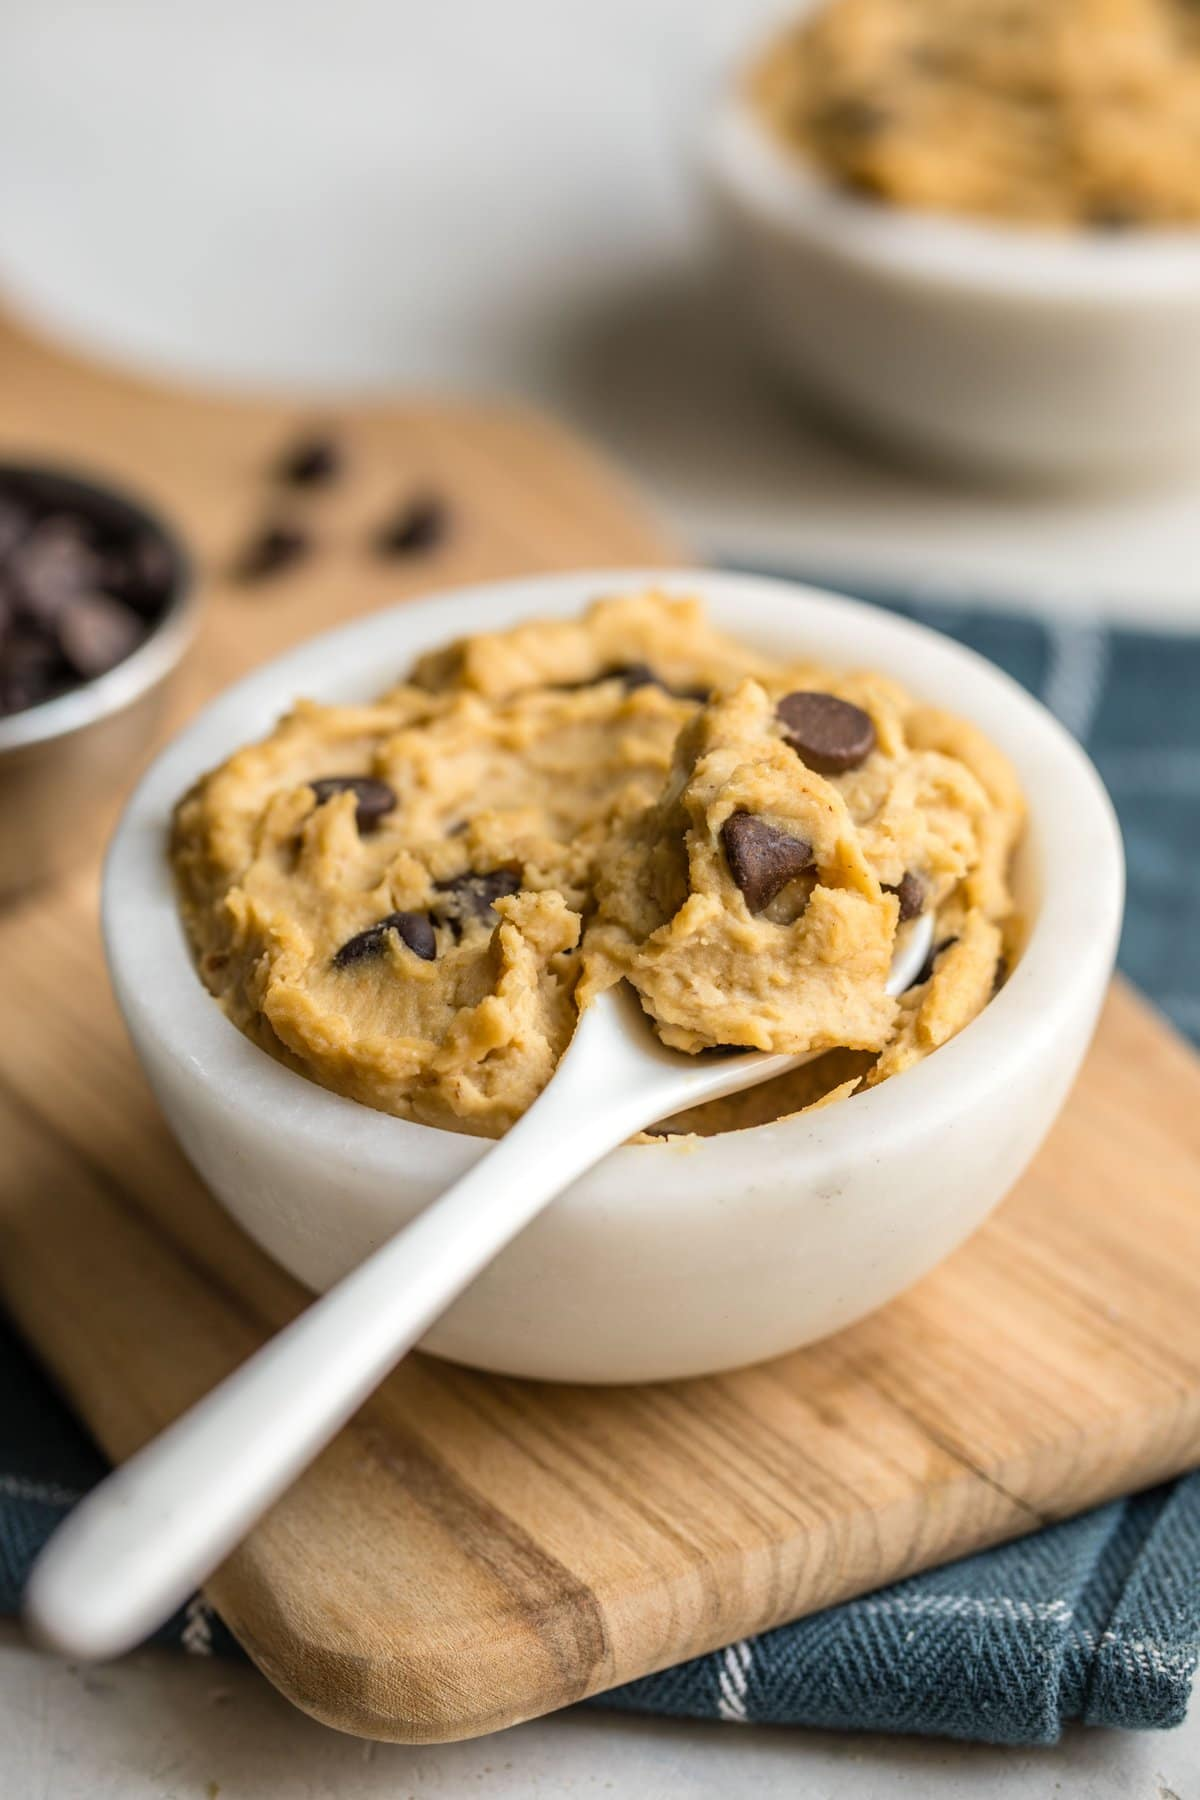 white bowl of chocolate chip cookie dough on wood serving tray with teal tea towel